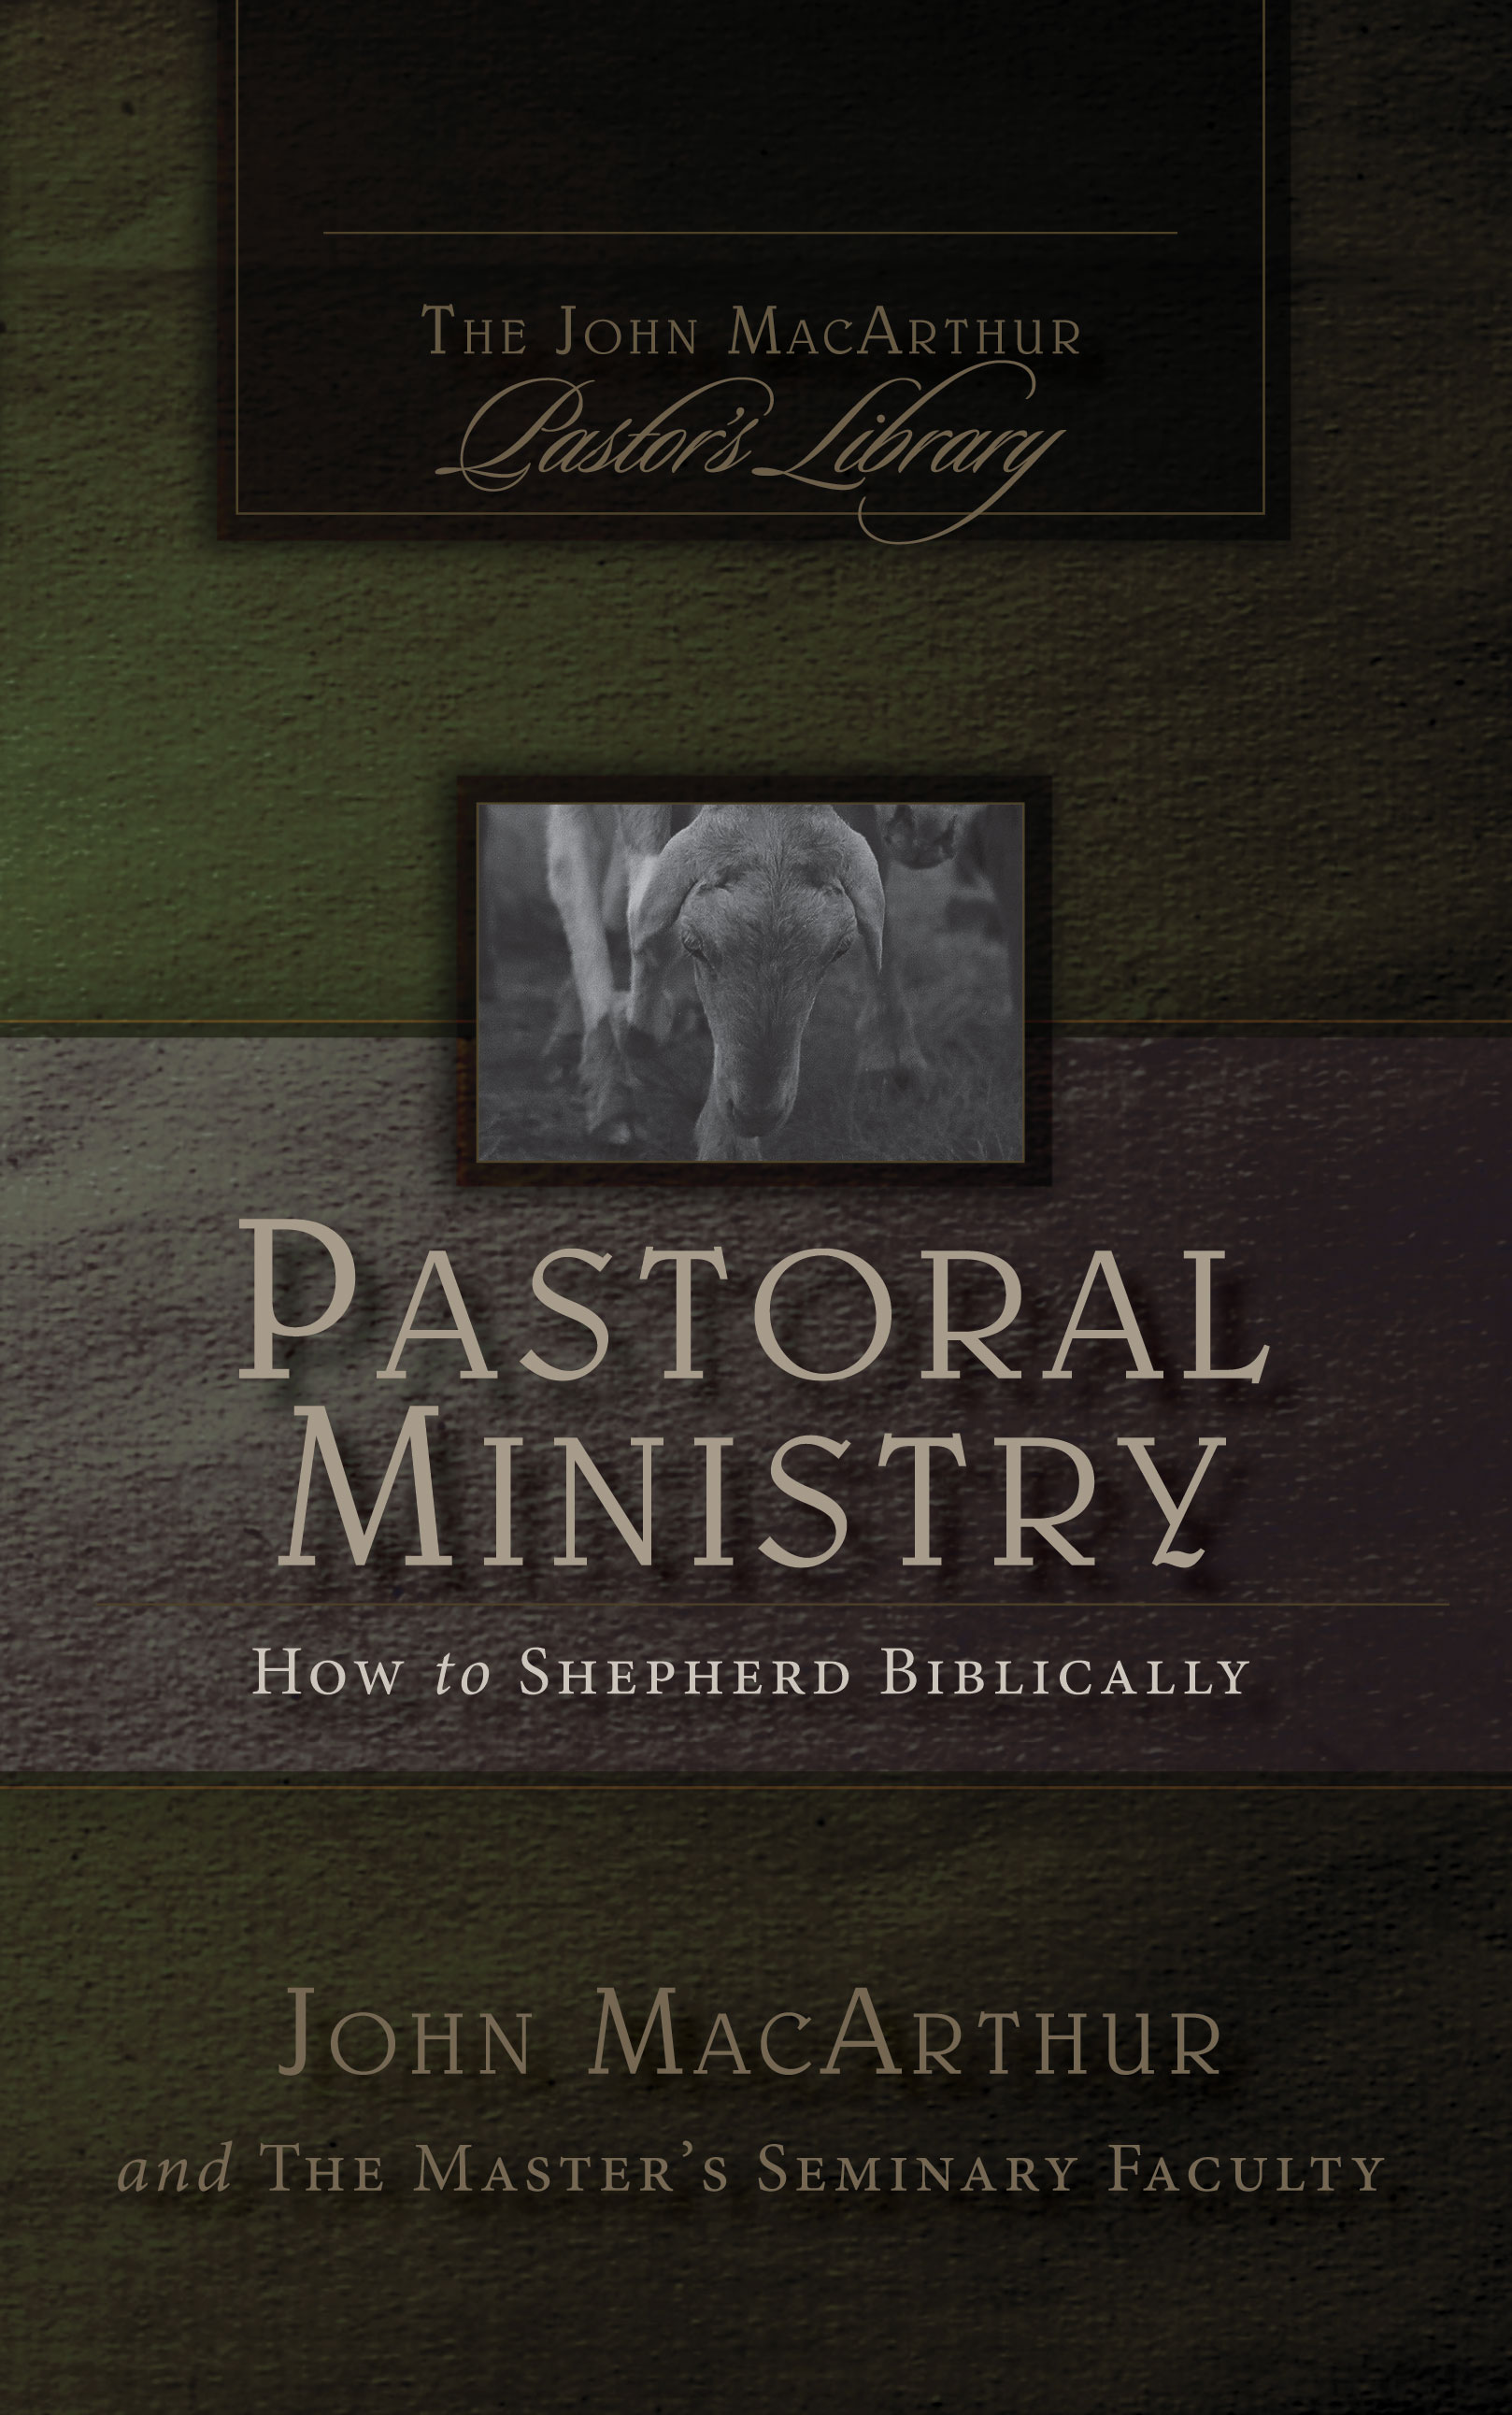 pastoral ministry how to shepherd biblically